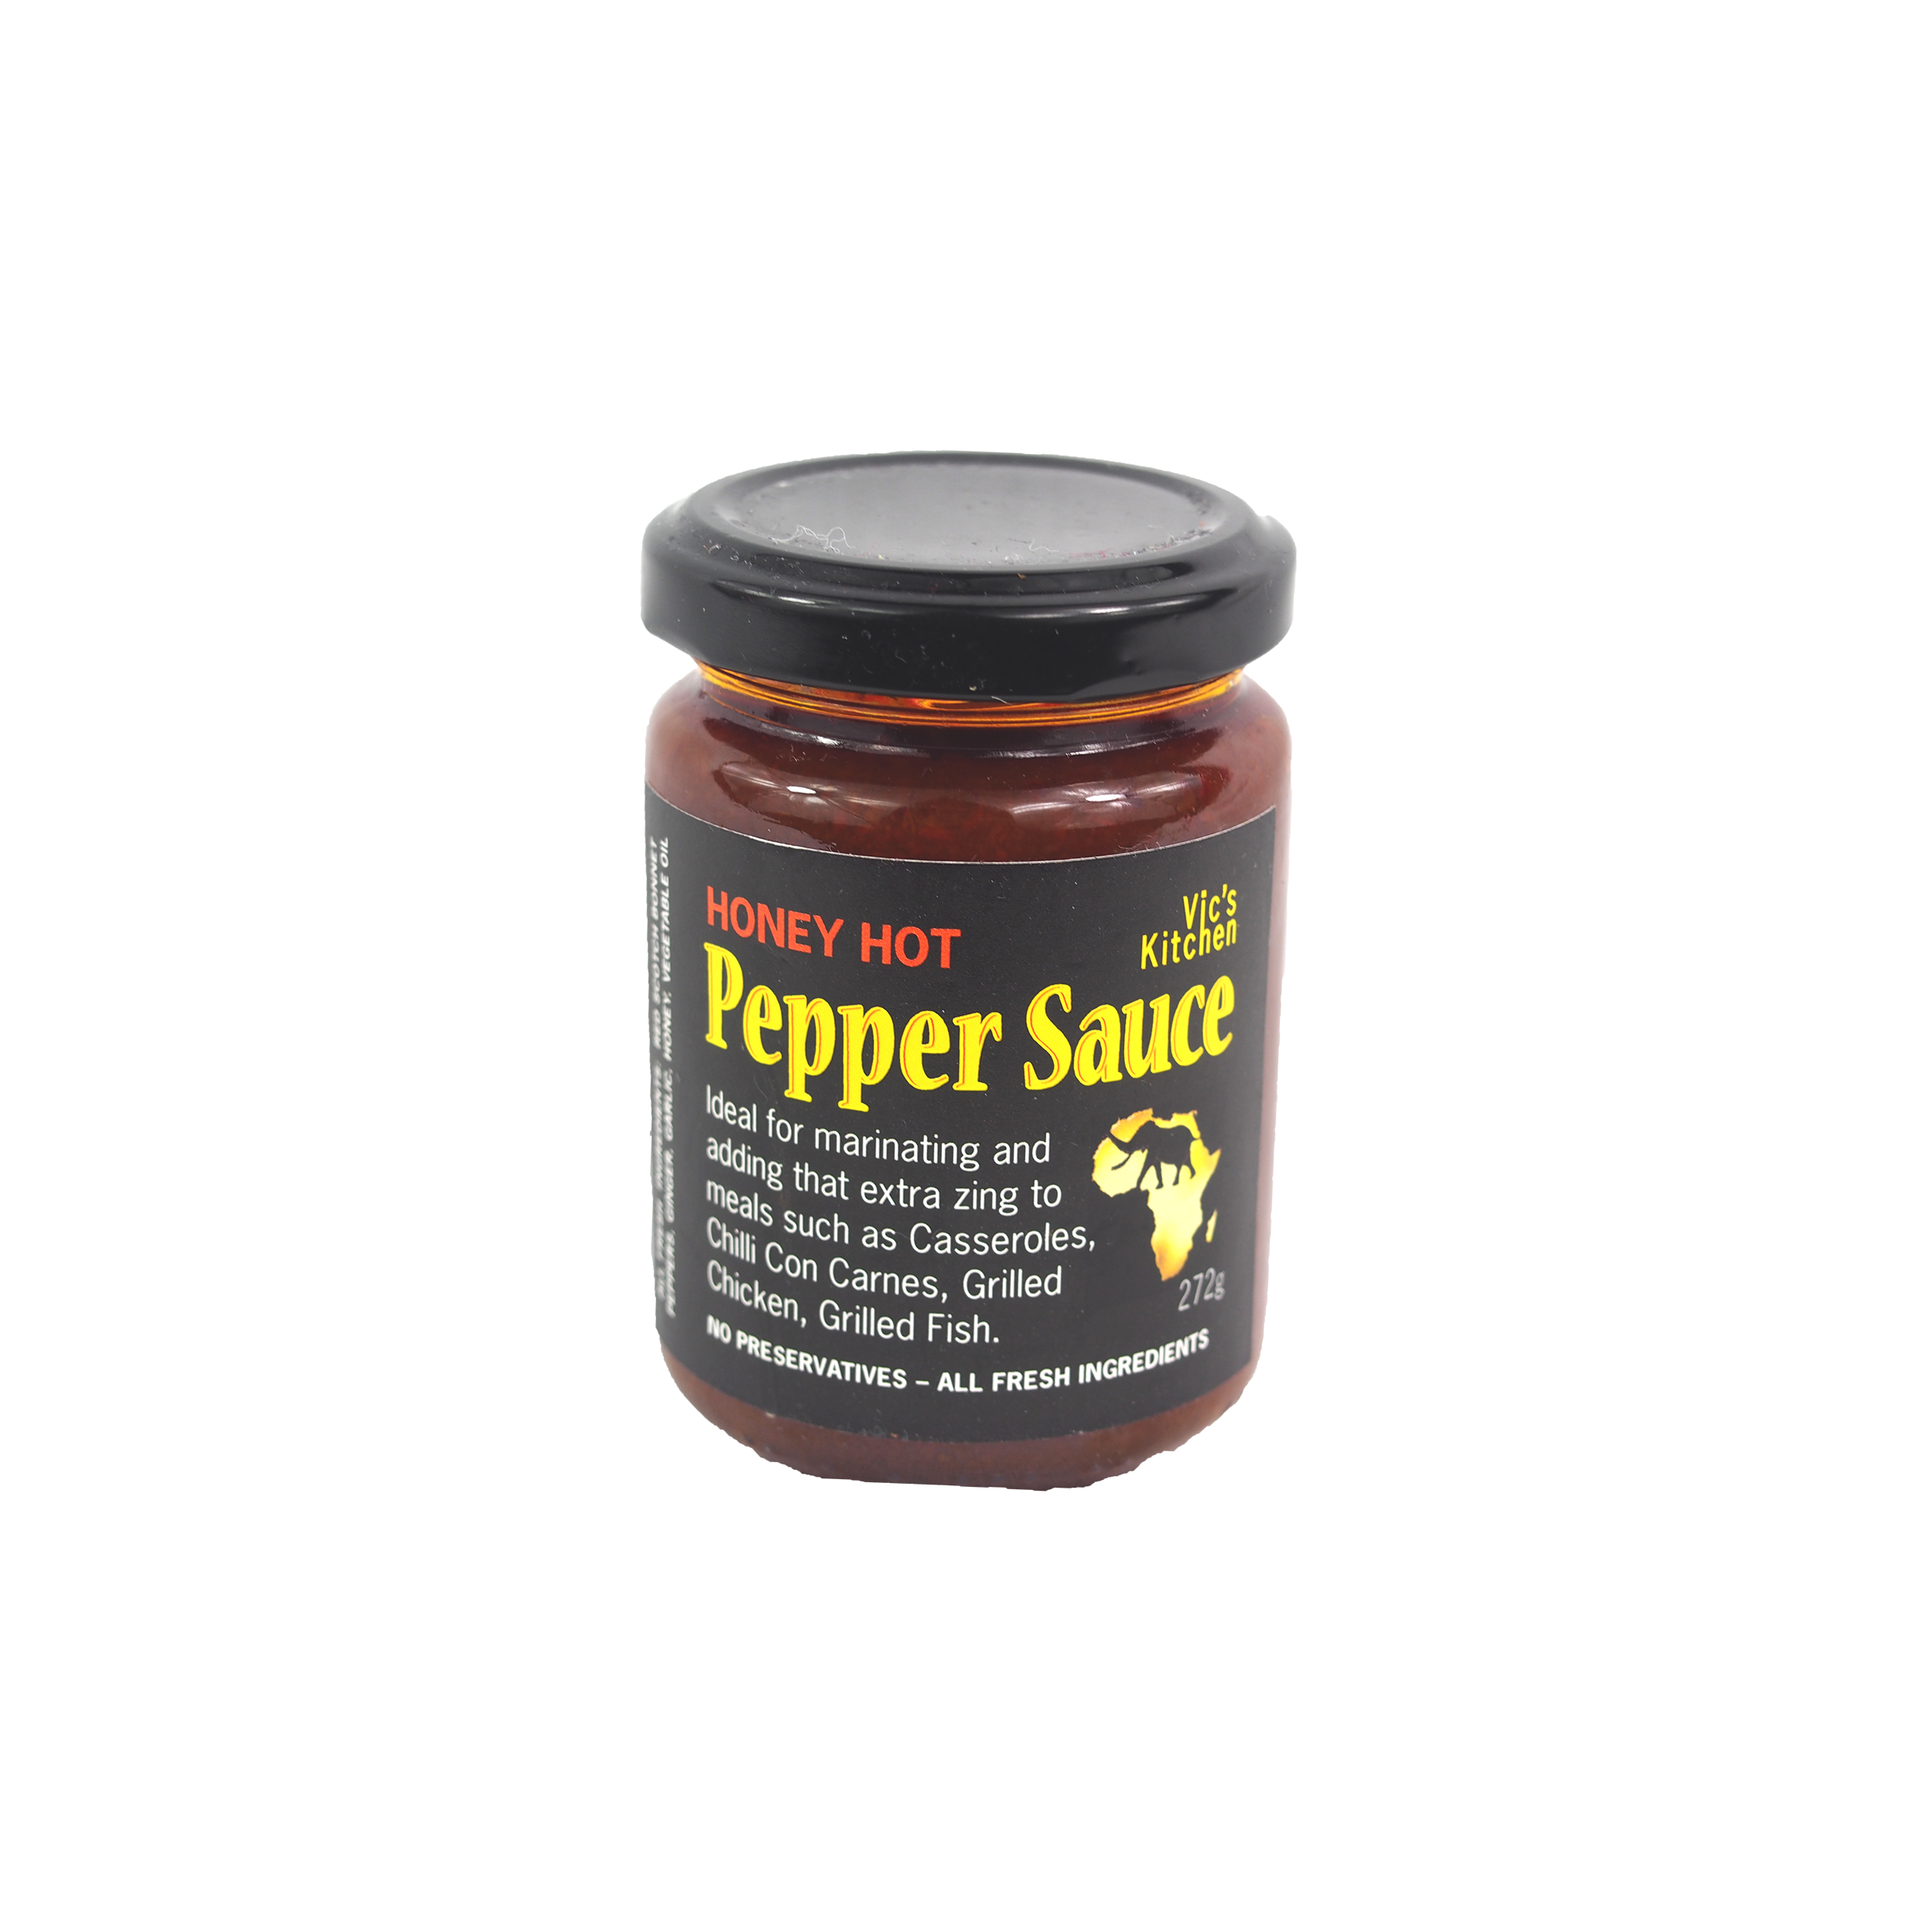 - Vic's Kitchen pepper sauce